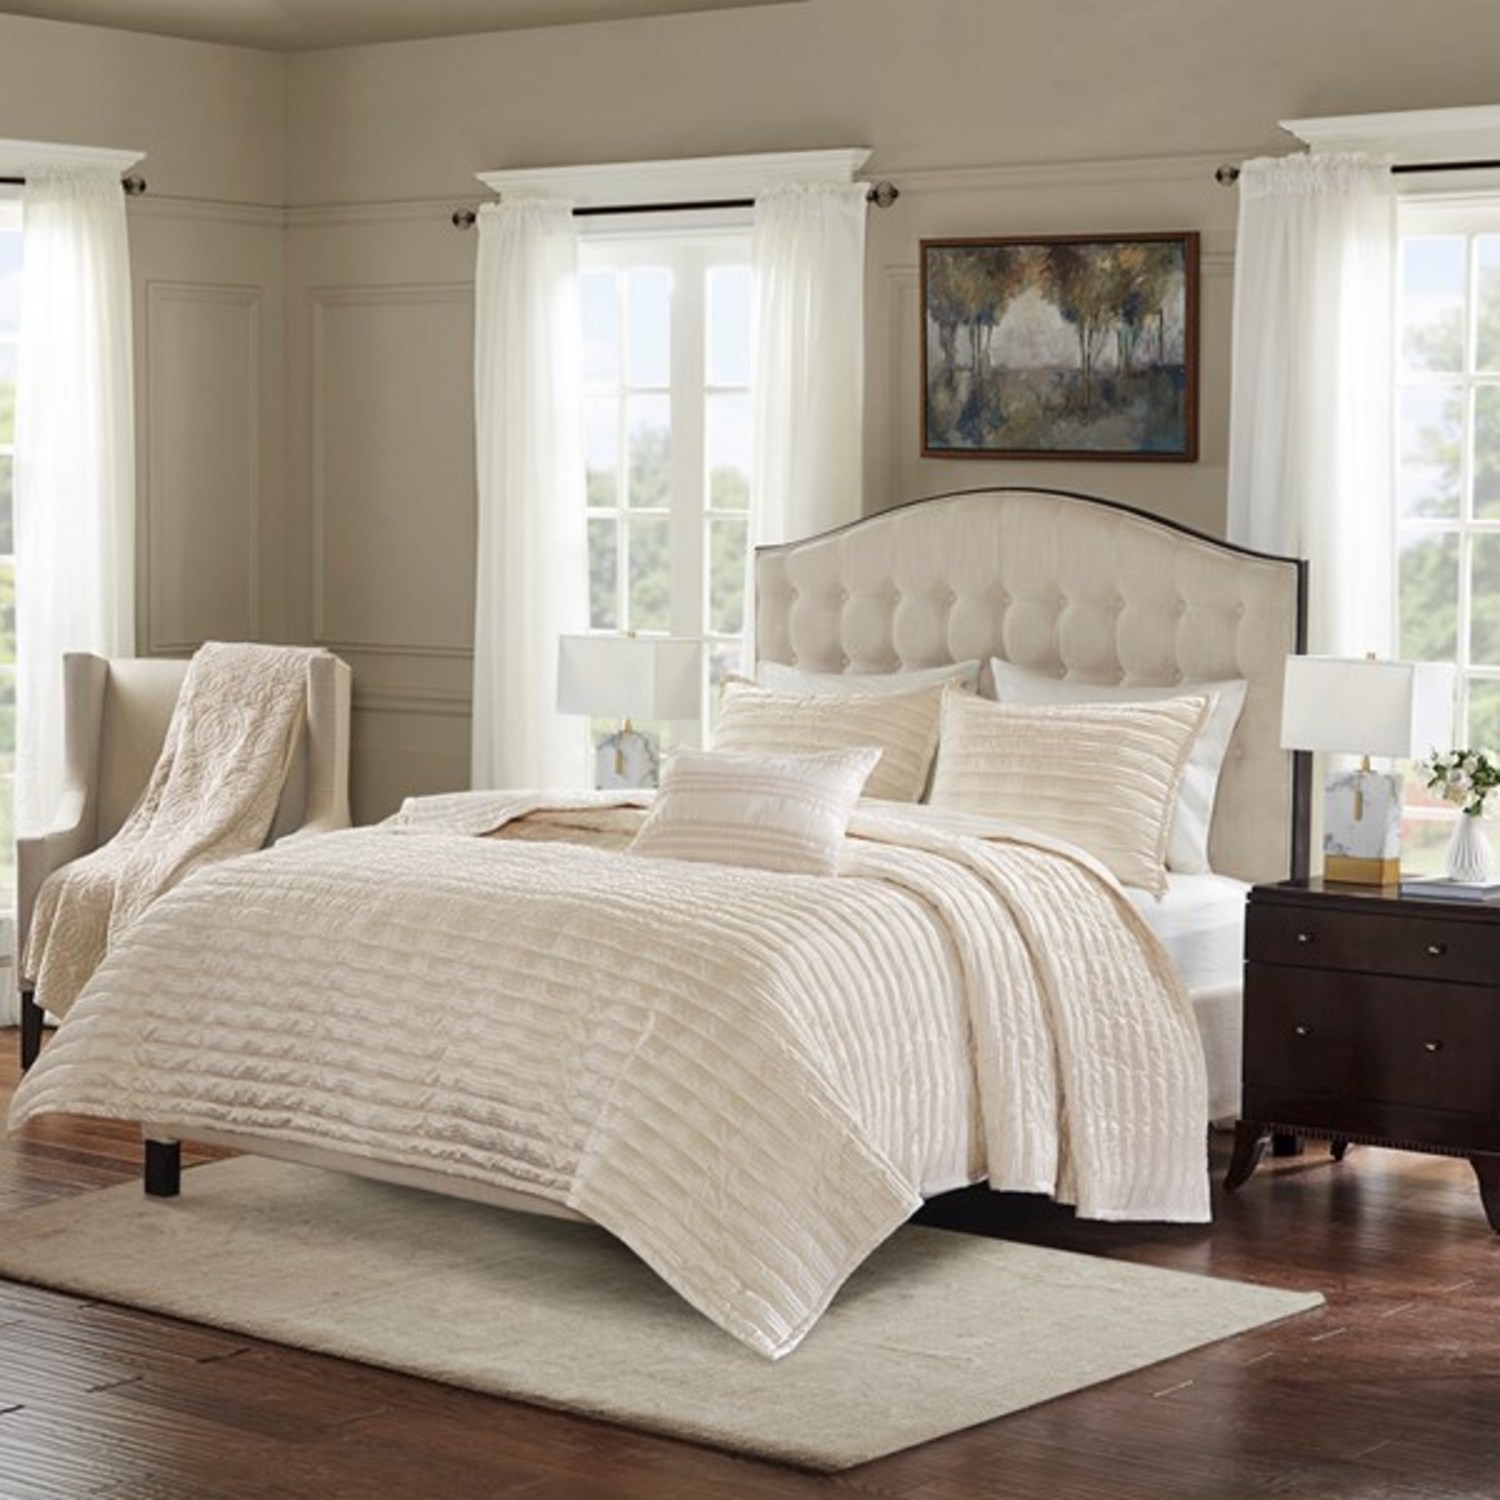 Chandler Available In 4 Colors By Bombay Bedding